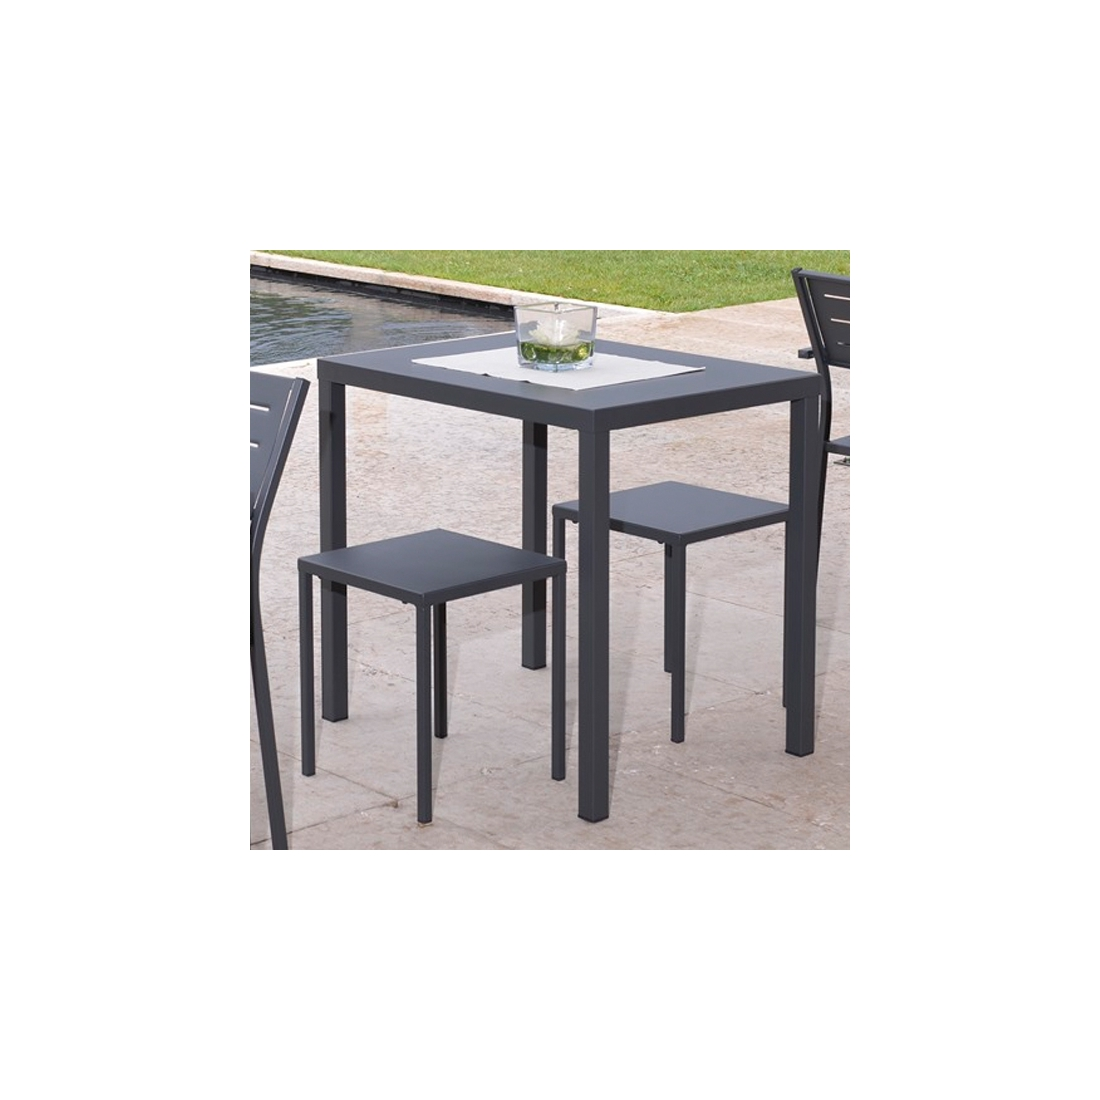 Table basse de jardin design - Table de jardin design ...